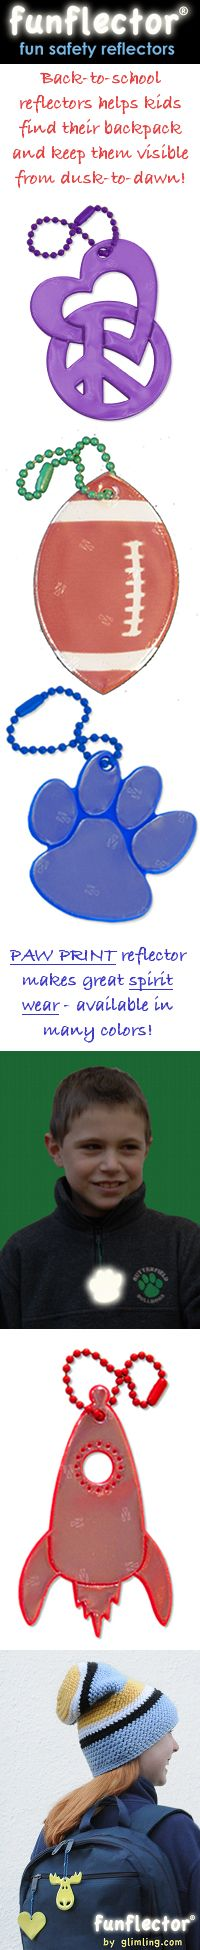 Fun back to school reflectors help kids find their backpacks and keep them visible from dusk to dawn. Paw print reflectors make great spirit wear and is available in many colors.